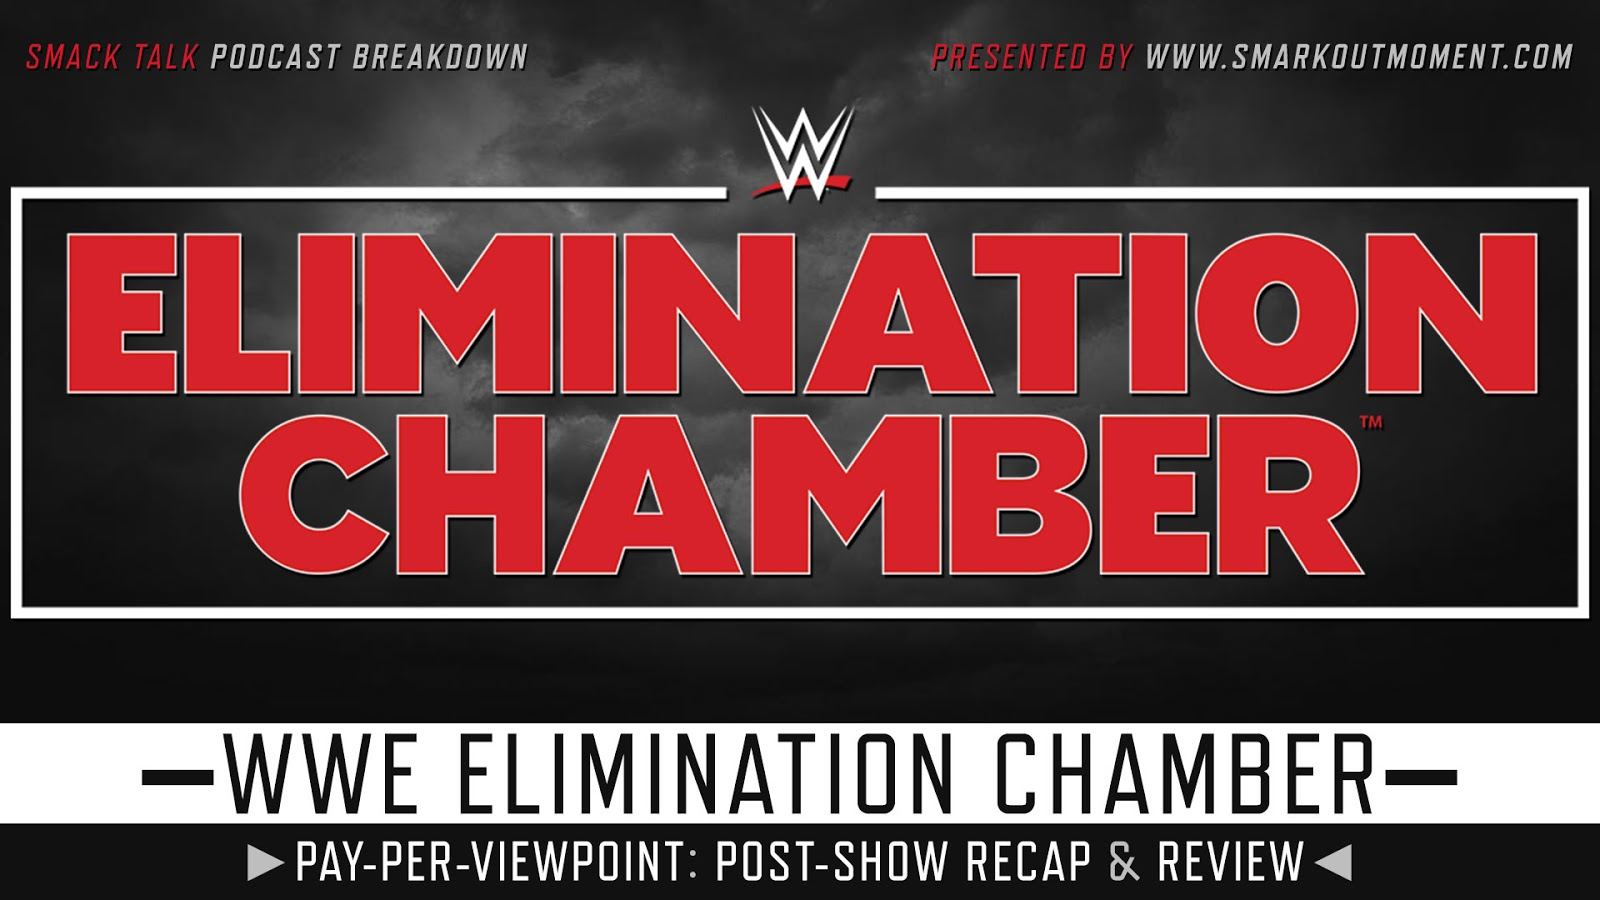 WWE Elimination Chamber 2019 Recap and Review Podcast